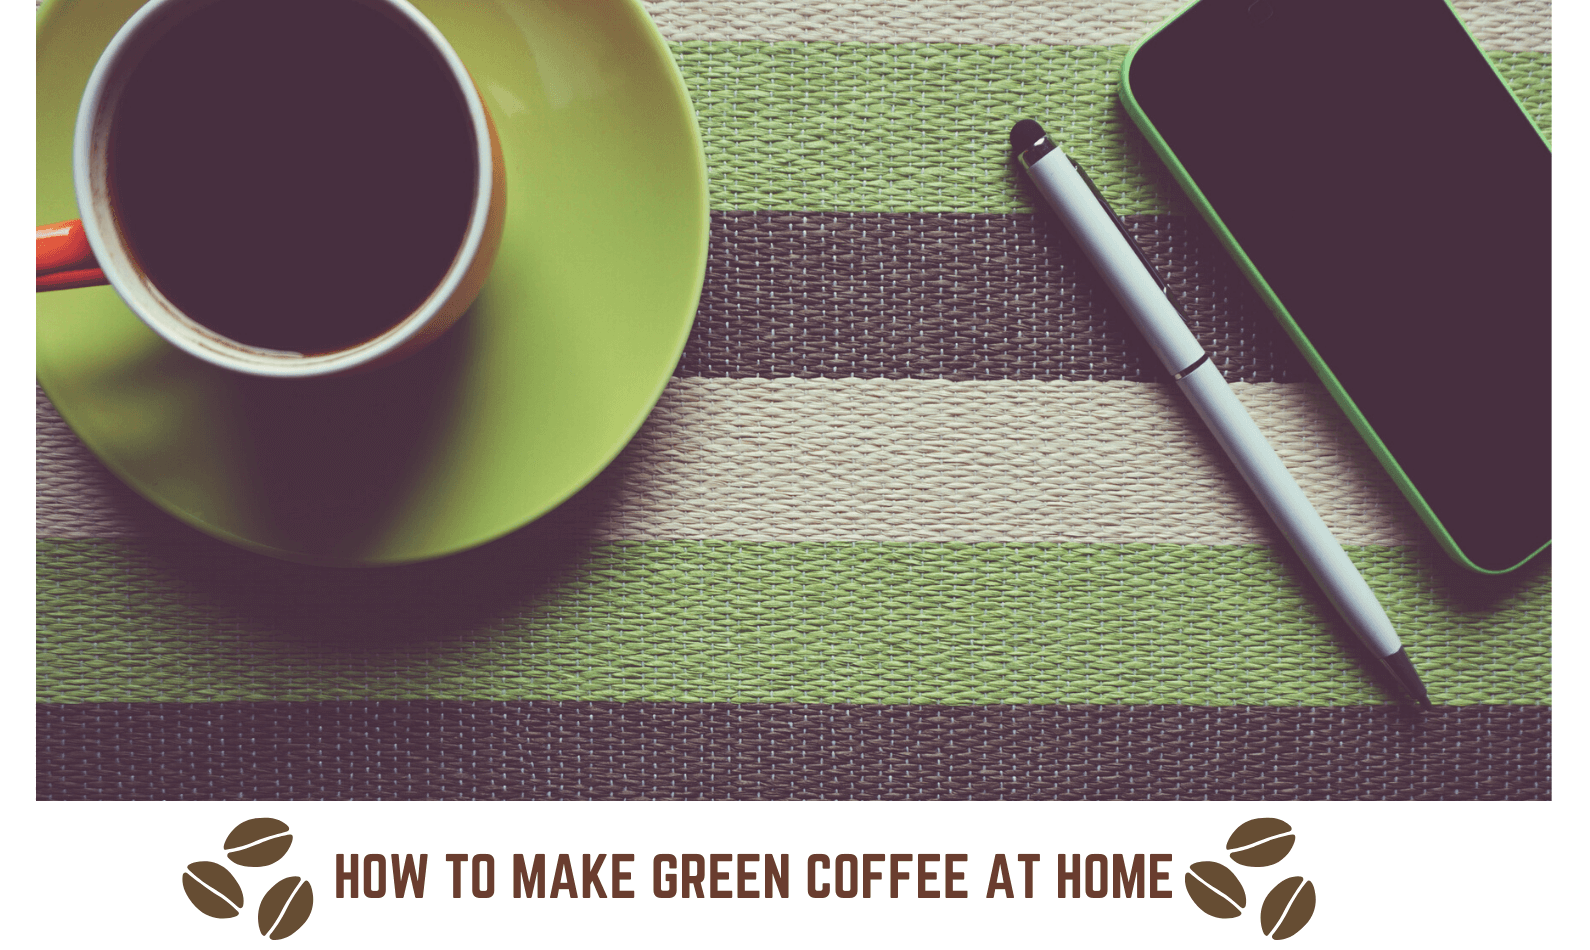 How to Make Green Coffee at Home